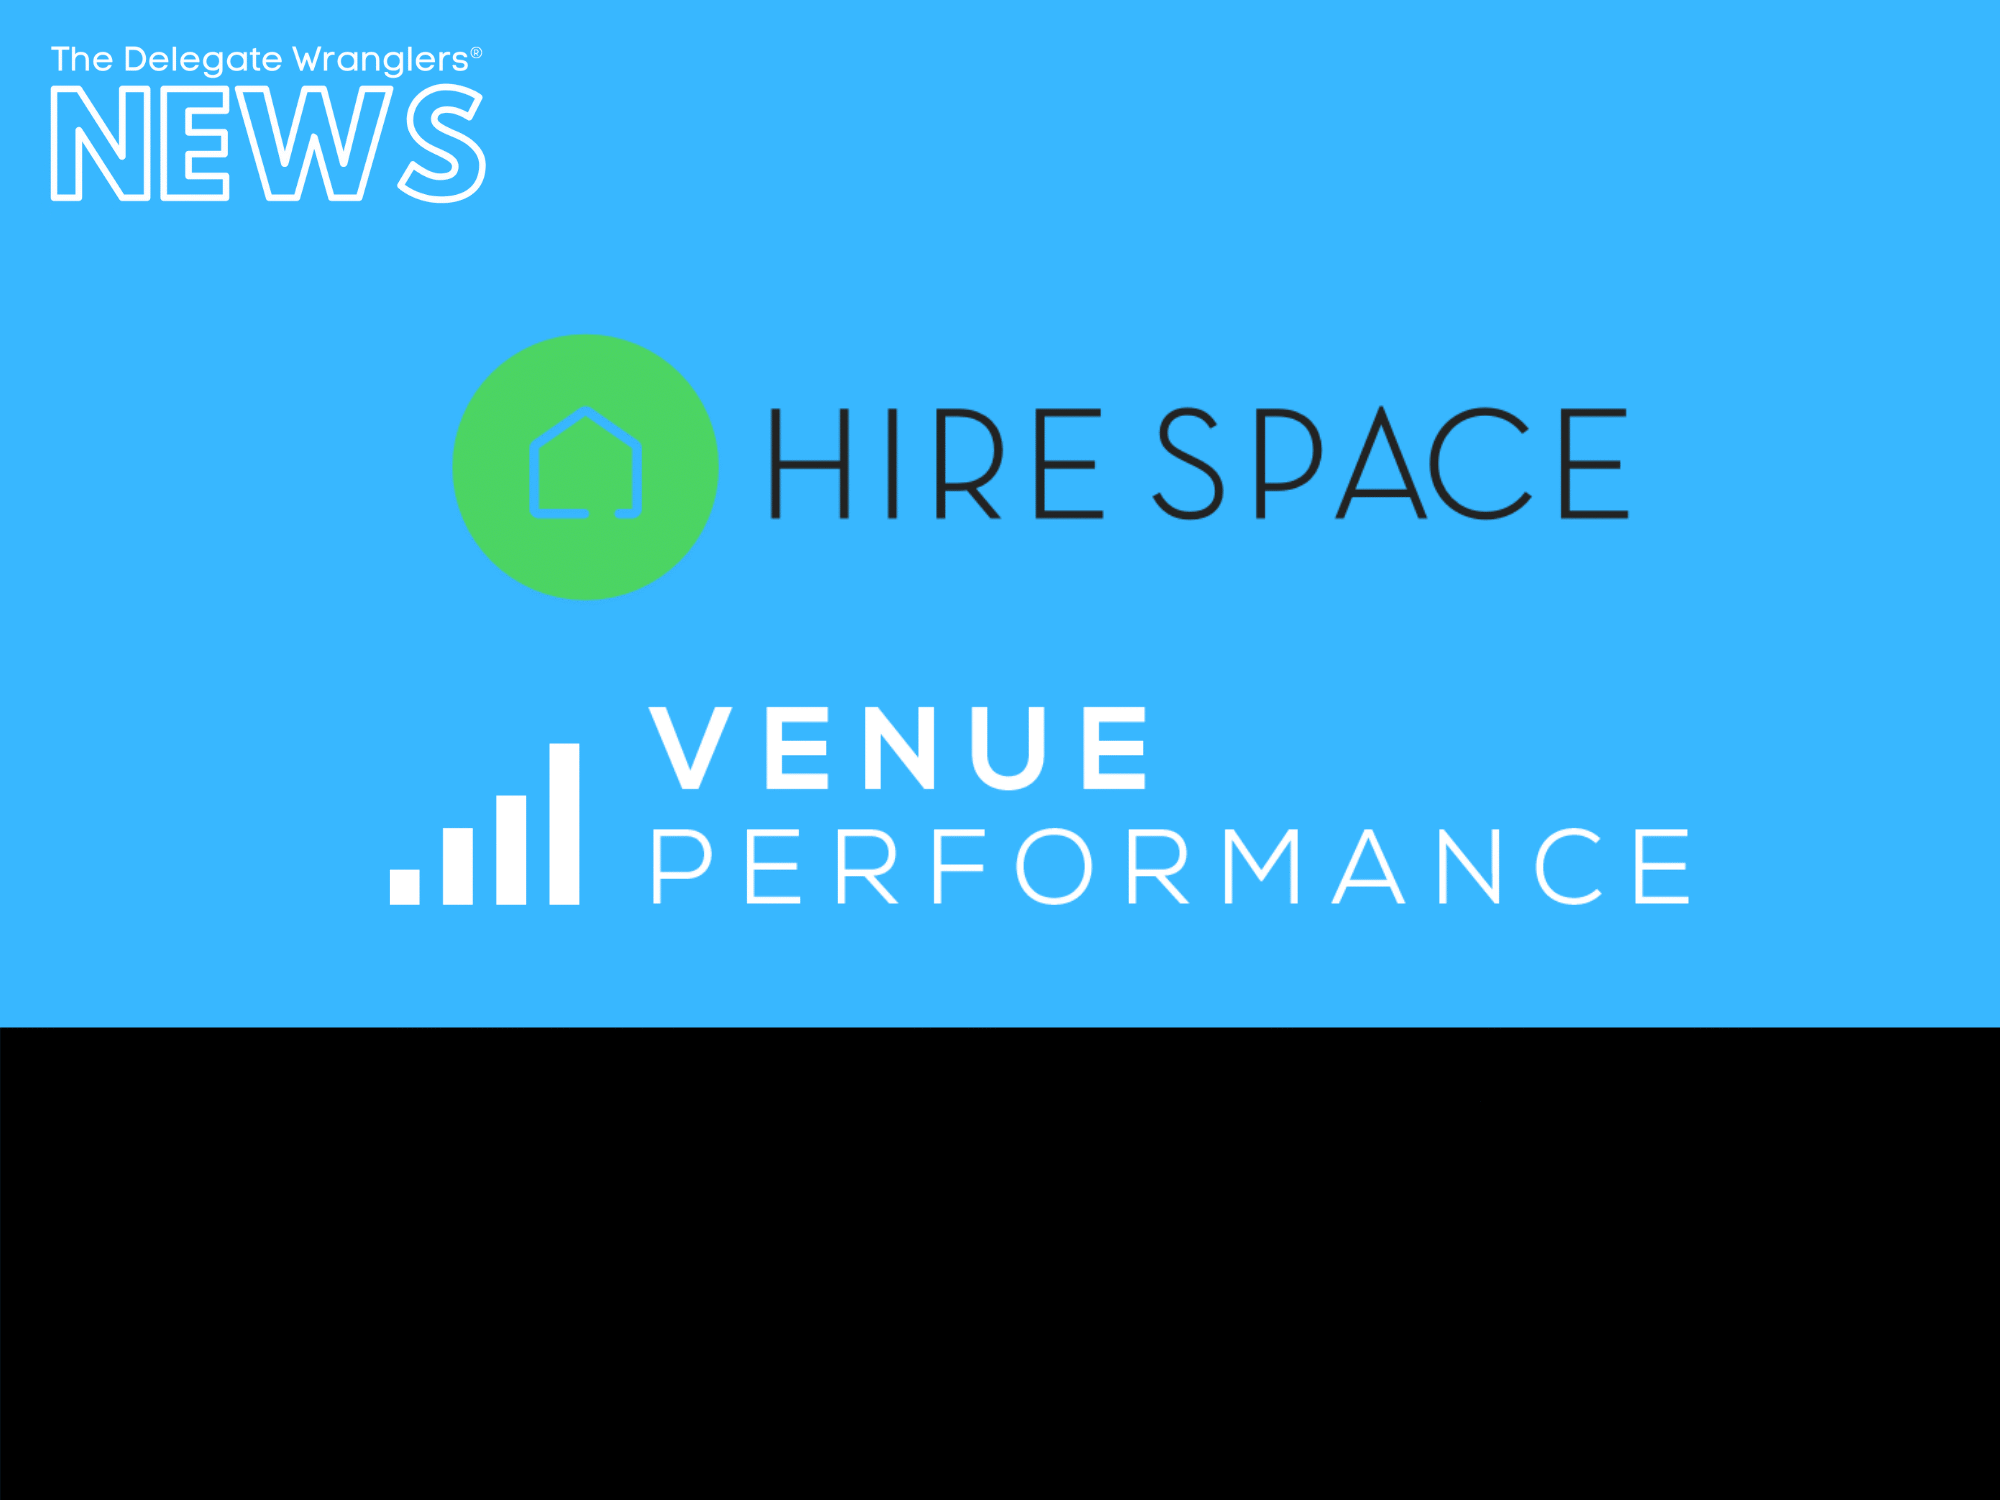 Hire Space and Venue Performance announce strategic partnership